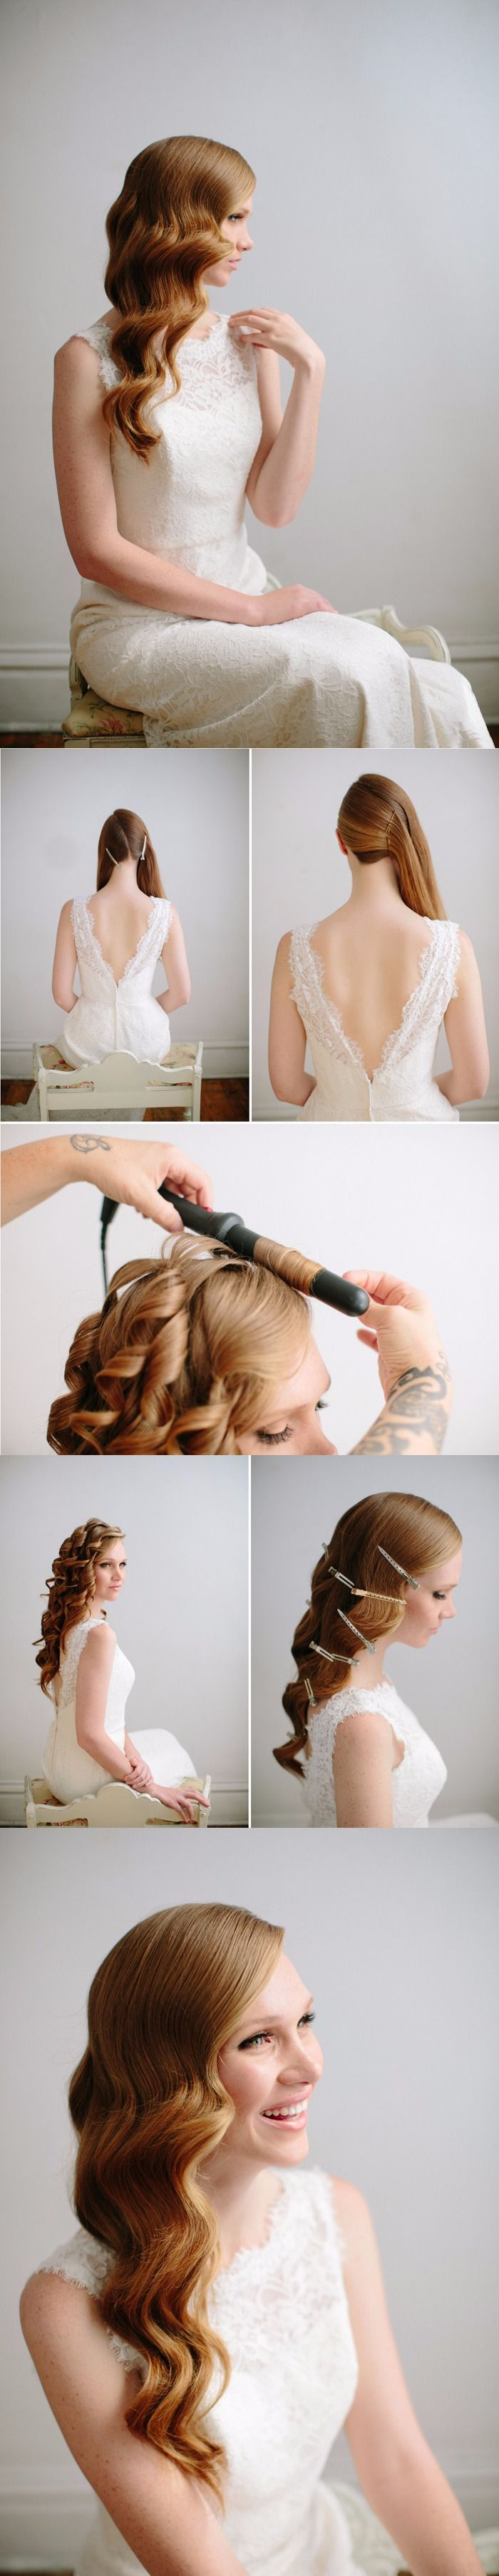 best makeup images on pinterest hairstyle ideas wedding hair